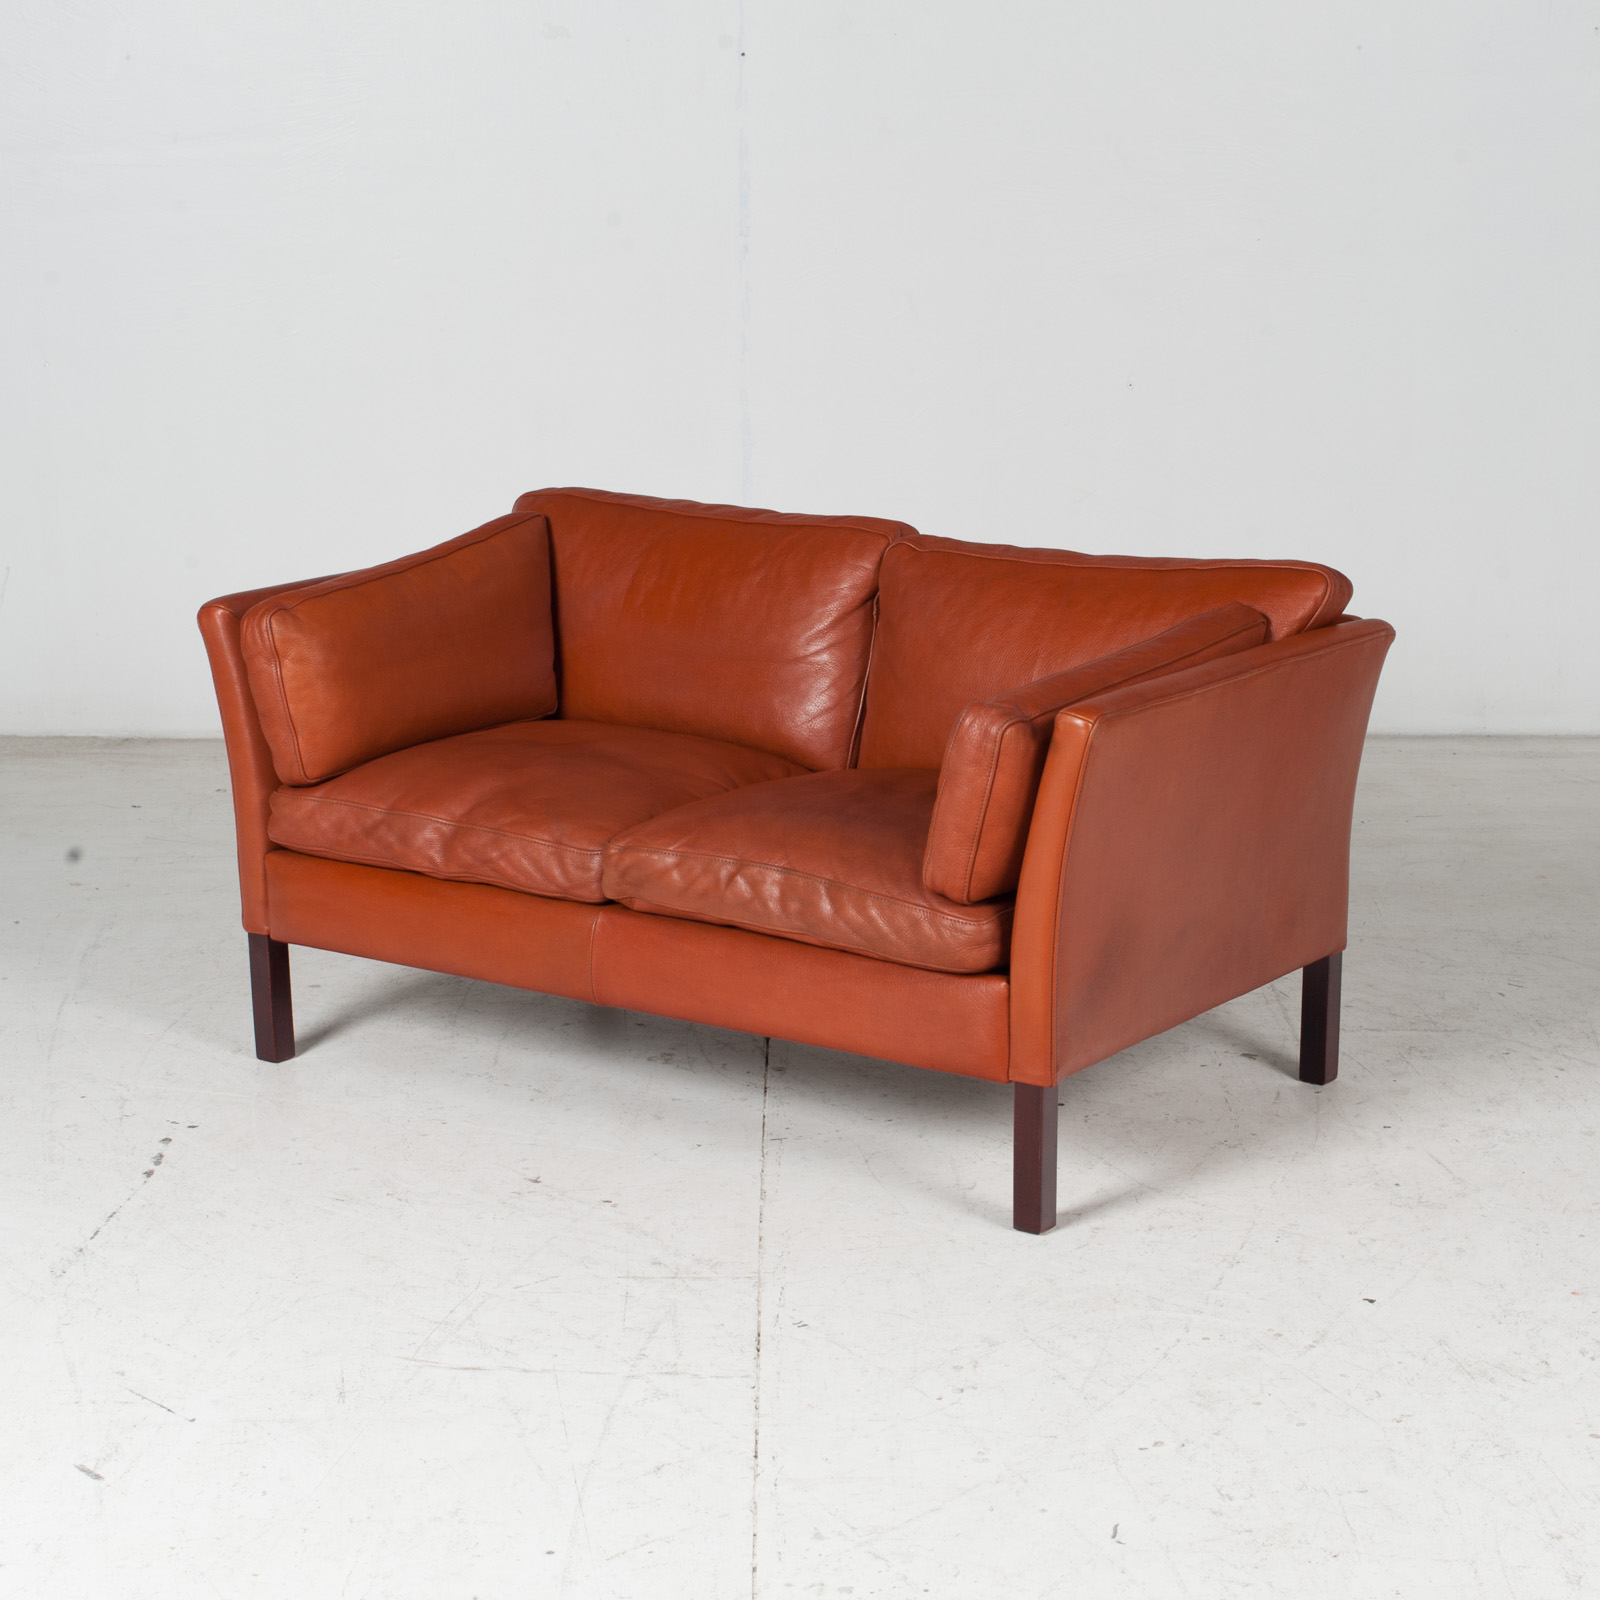 2 Seat Sofa By Stouby In Tan Leather, 1960s, Denmark 4